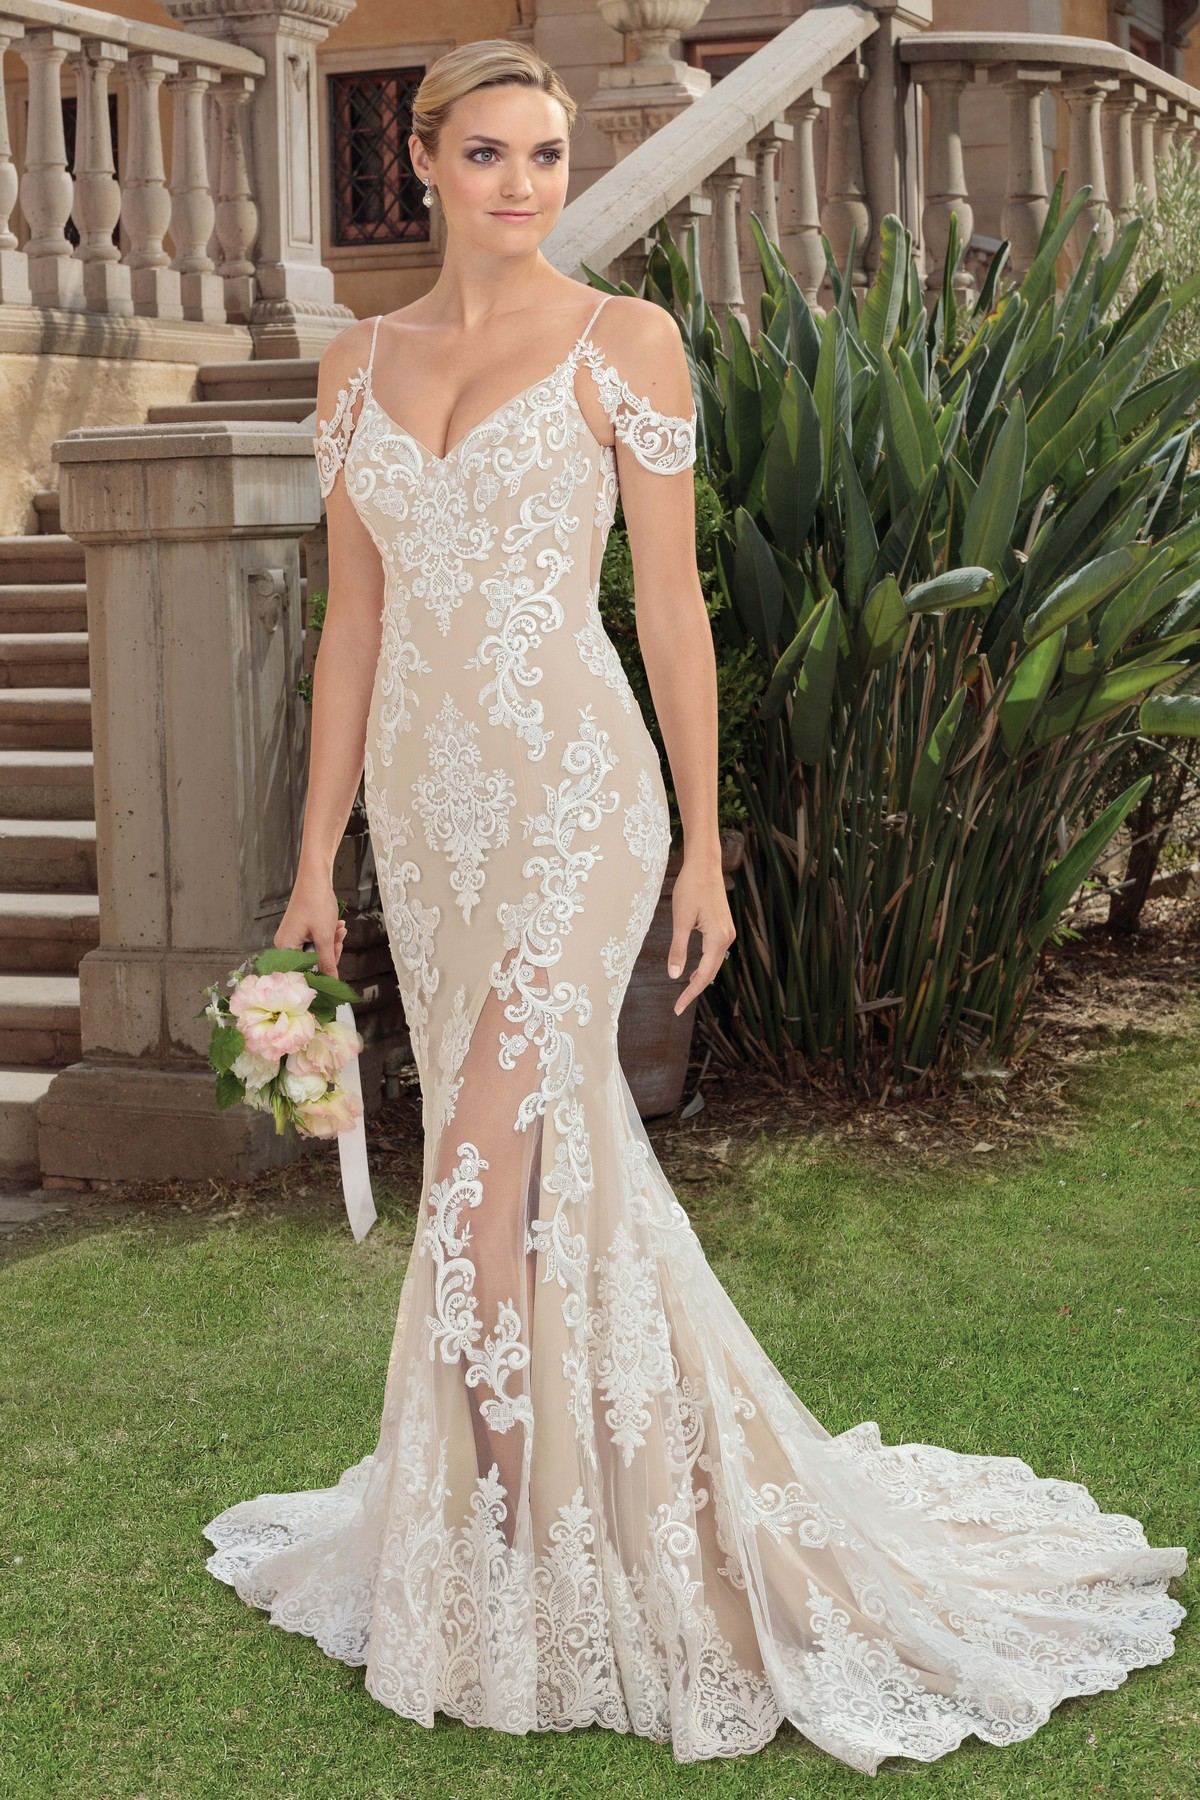 308287ee44946 Style 2324 Zola by Casablanca Bridal - Find Your Dream Dress